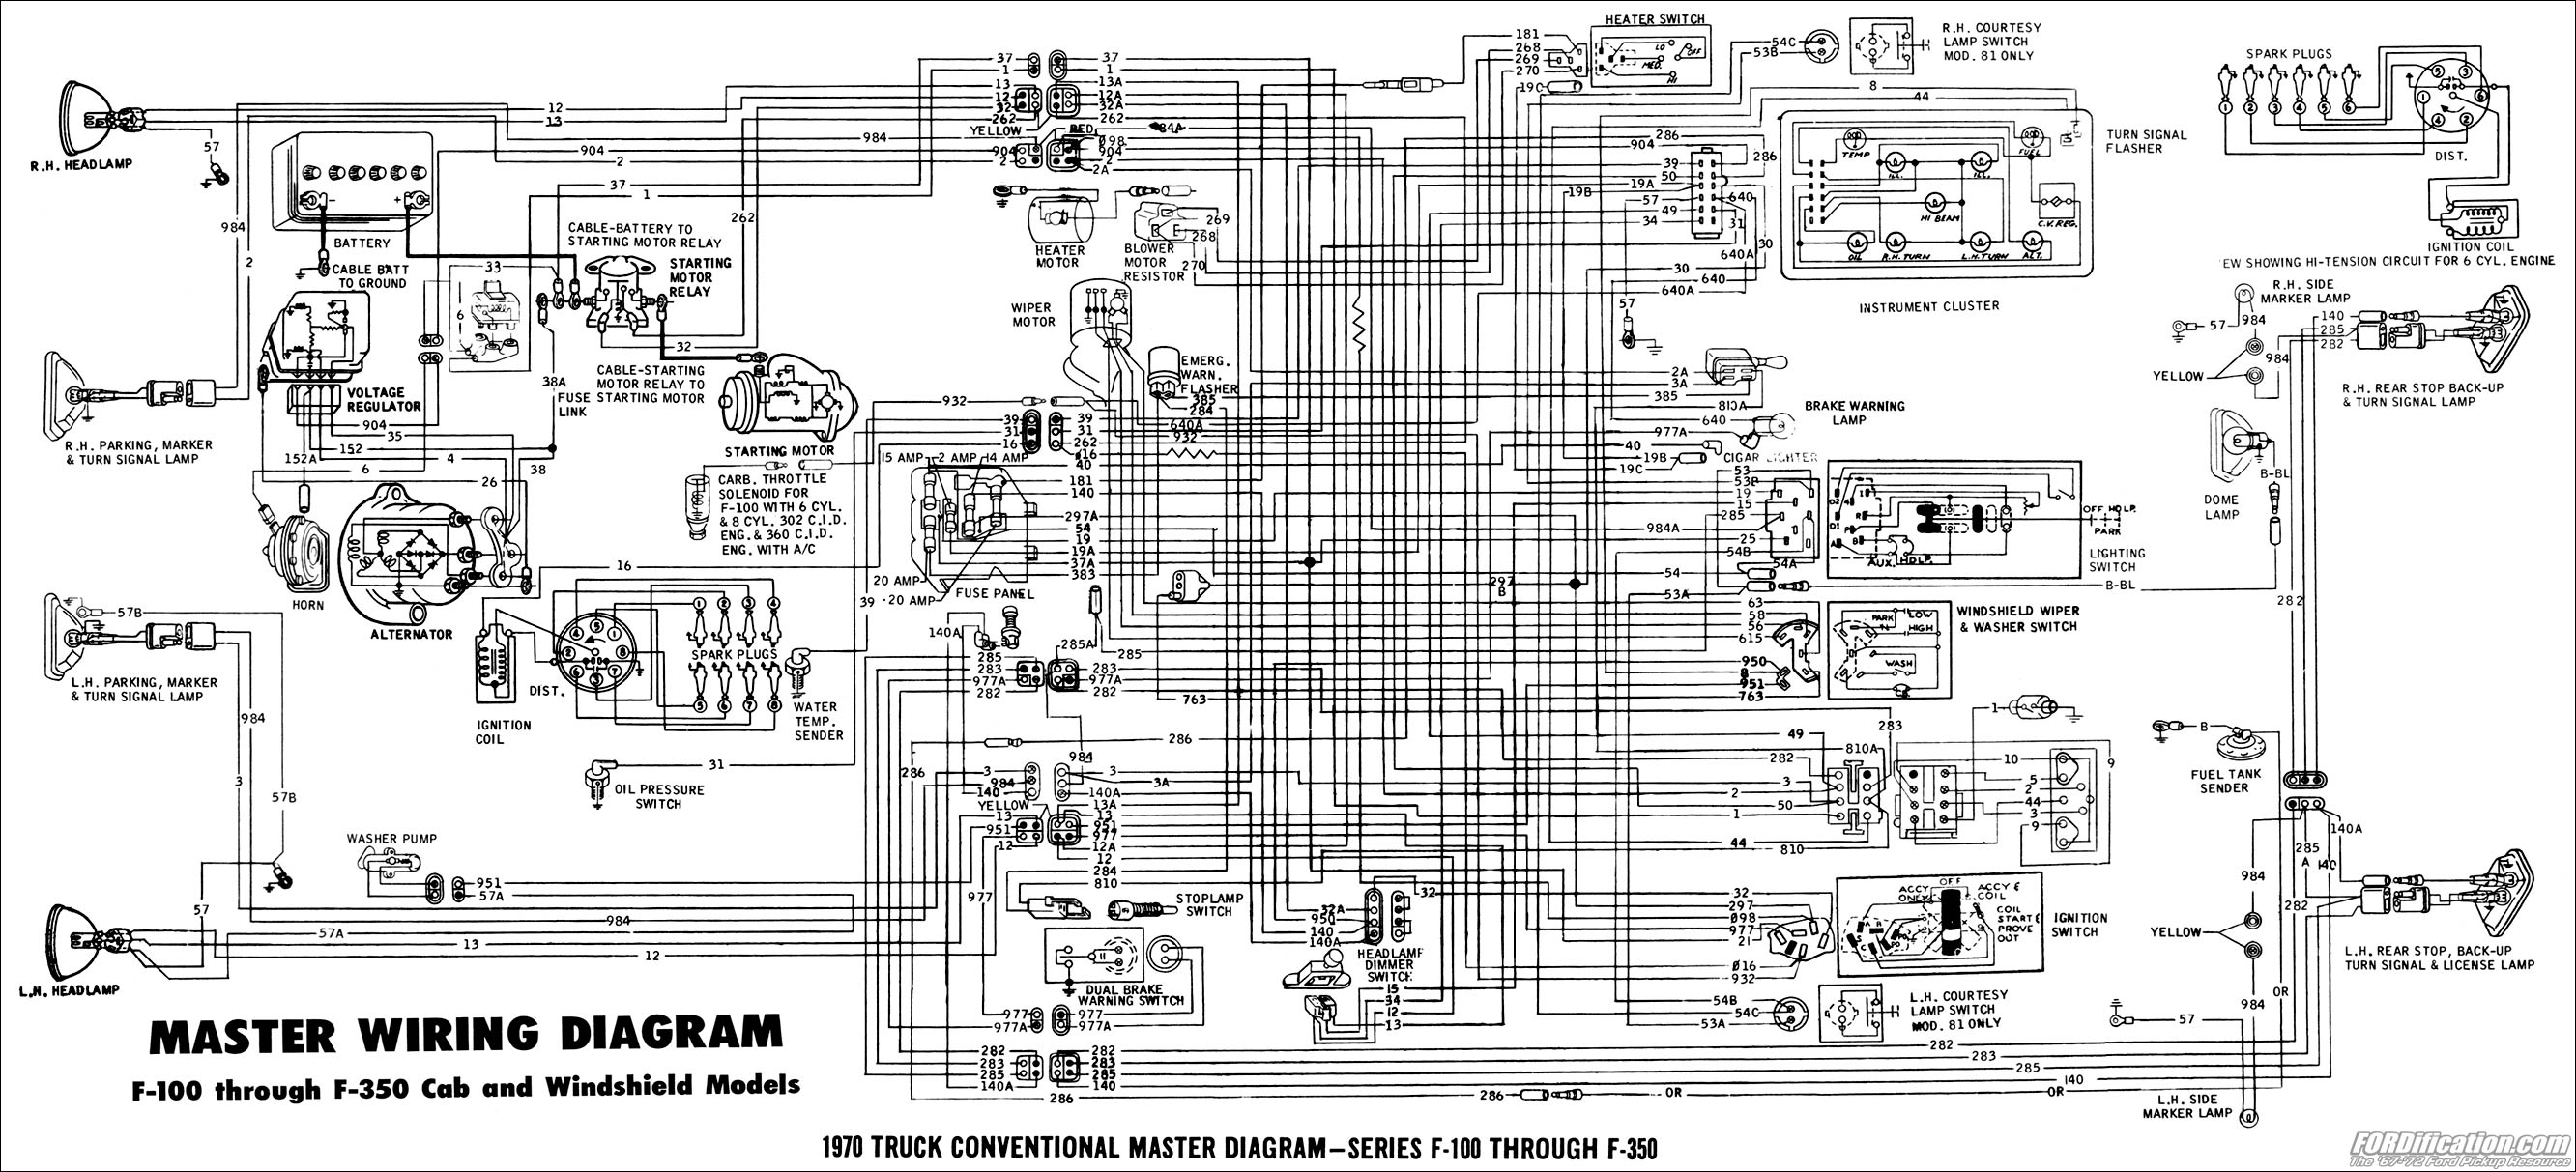 1989 ford fuel system diagram reinvent your wiring diagram u2022 rh  kismetcars co uk F150 Fuel Pump Relay Location 1987 ford f150 fuel system  diagram